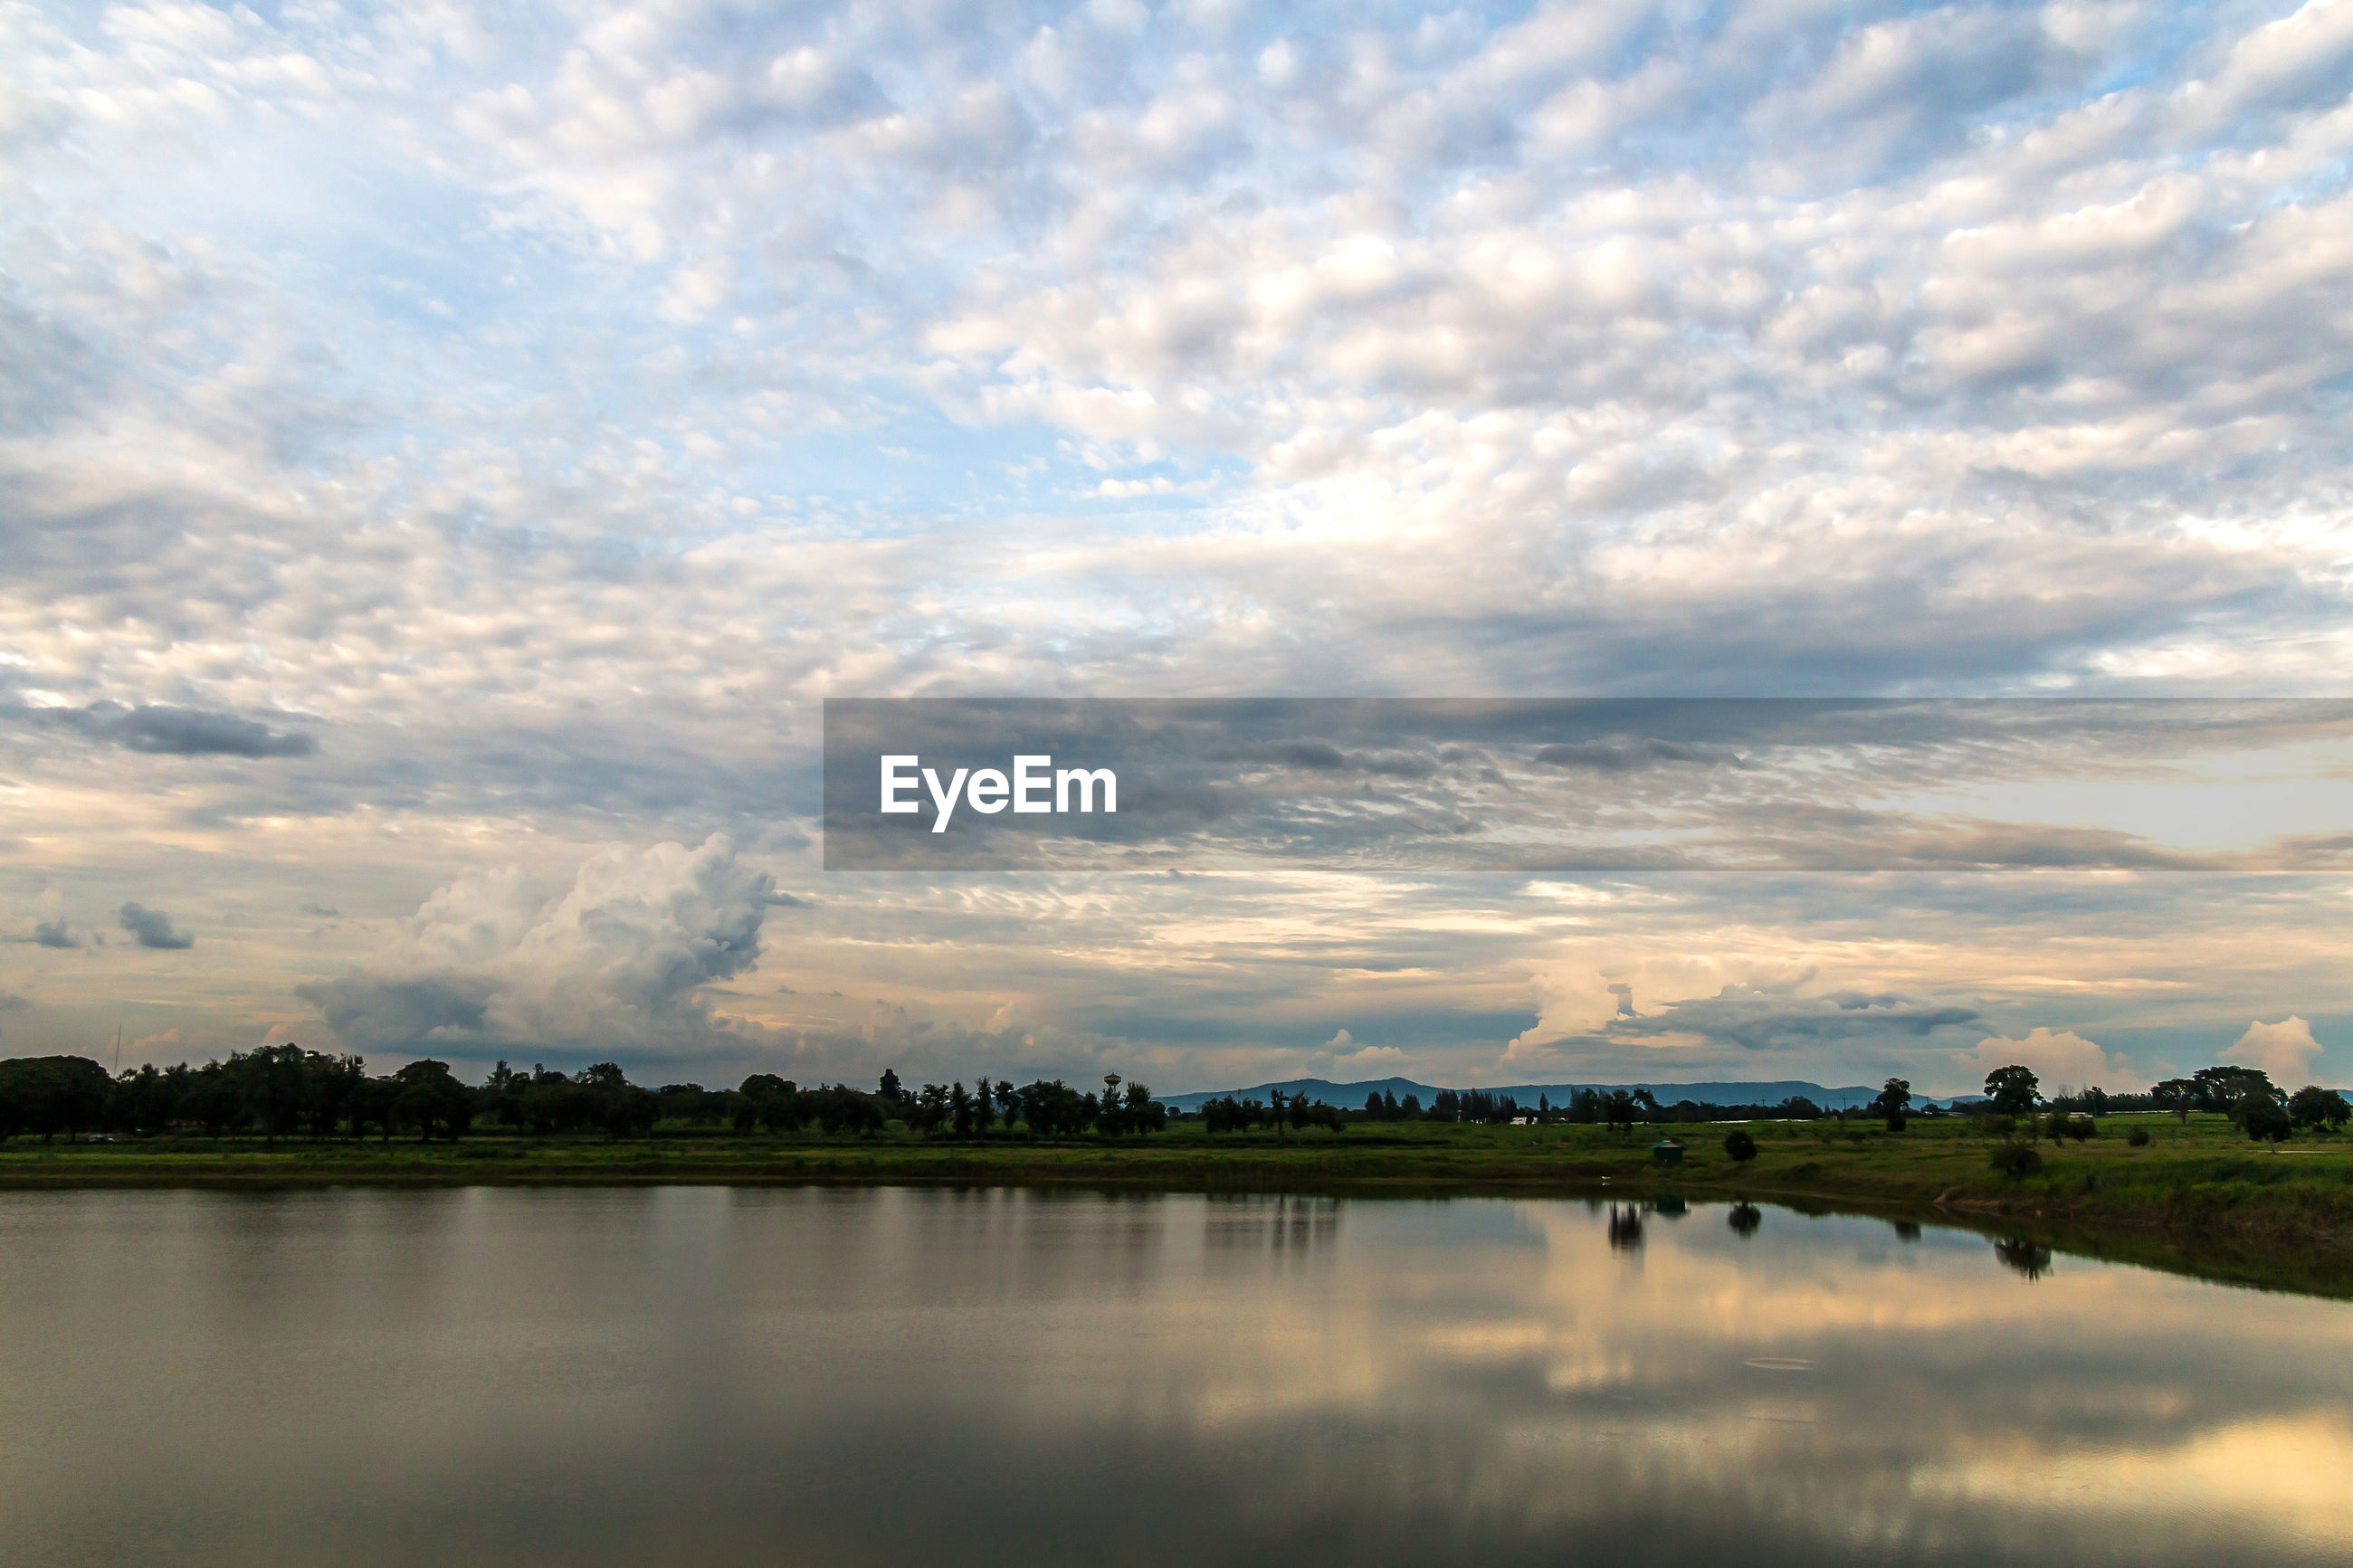 PANORAMIC VIEW OF RIVER AGAINST SKY